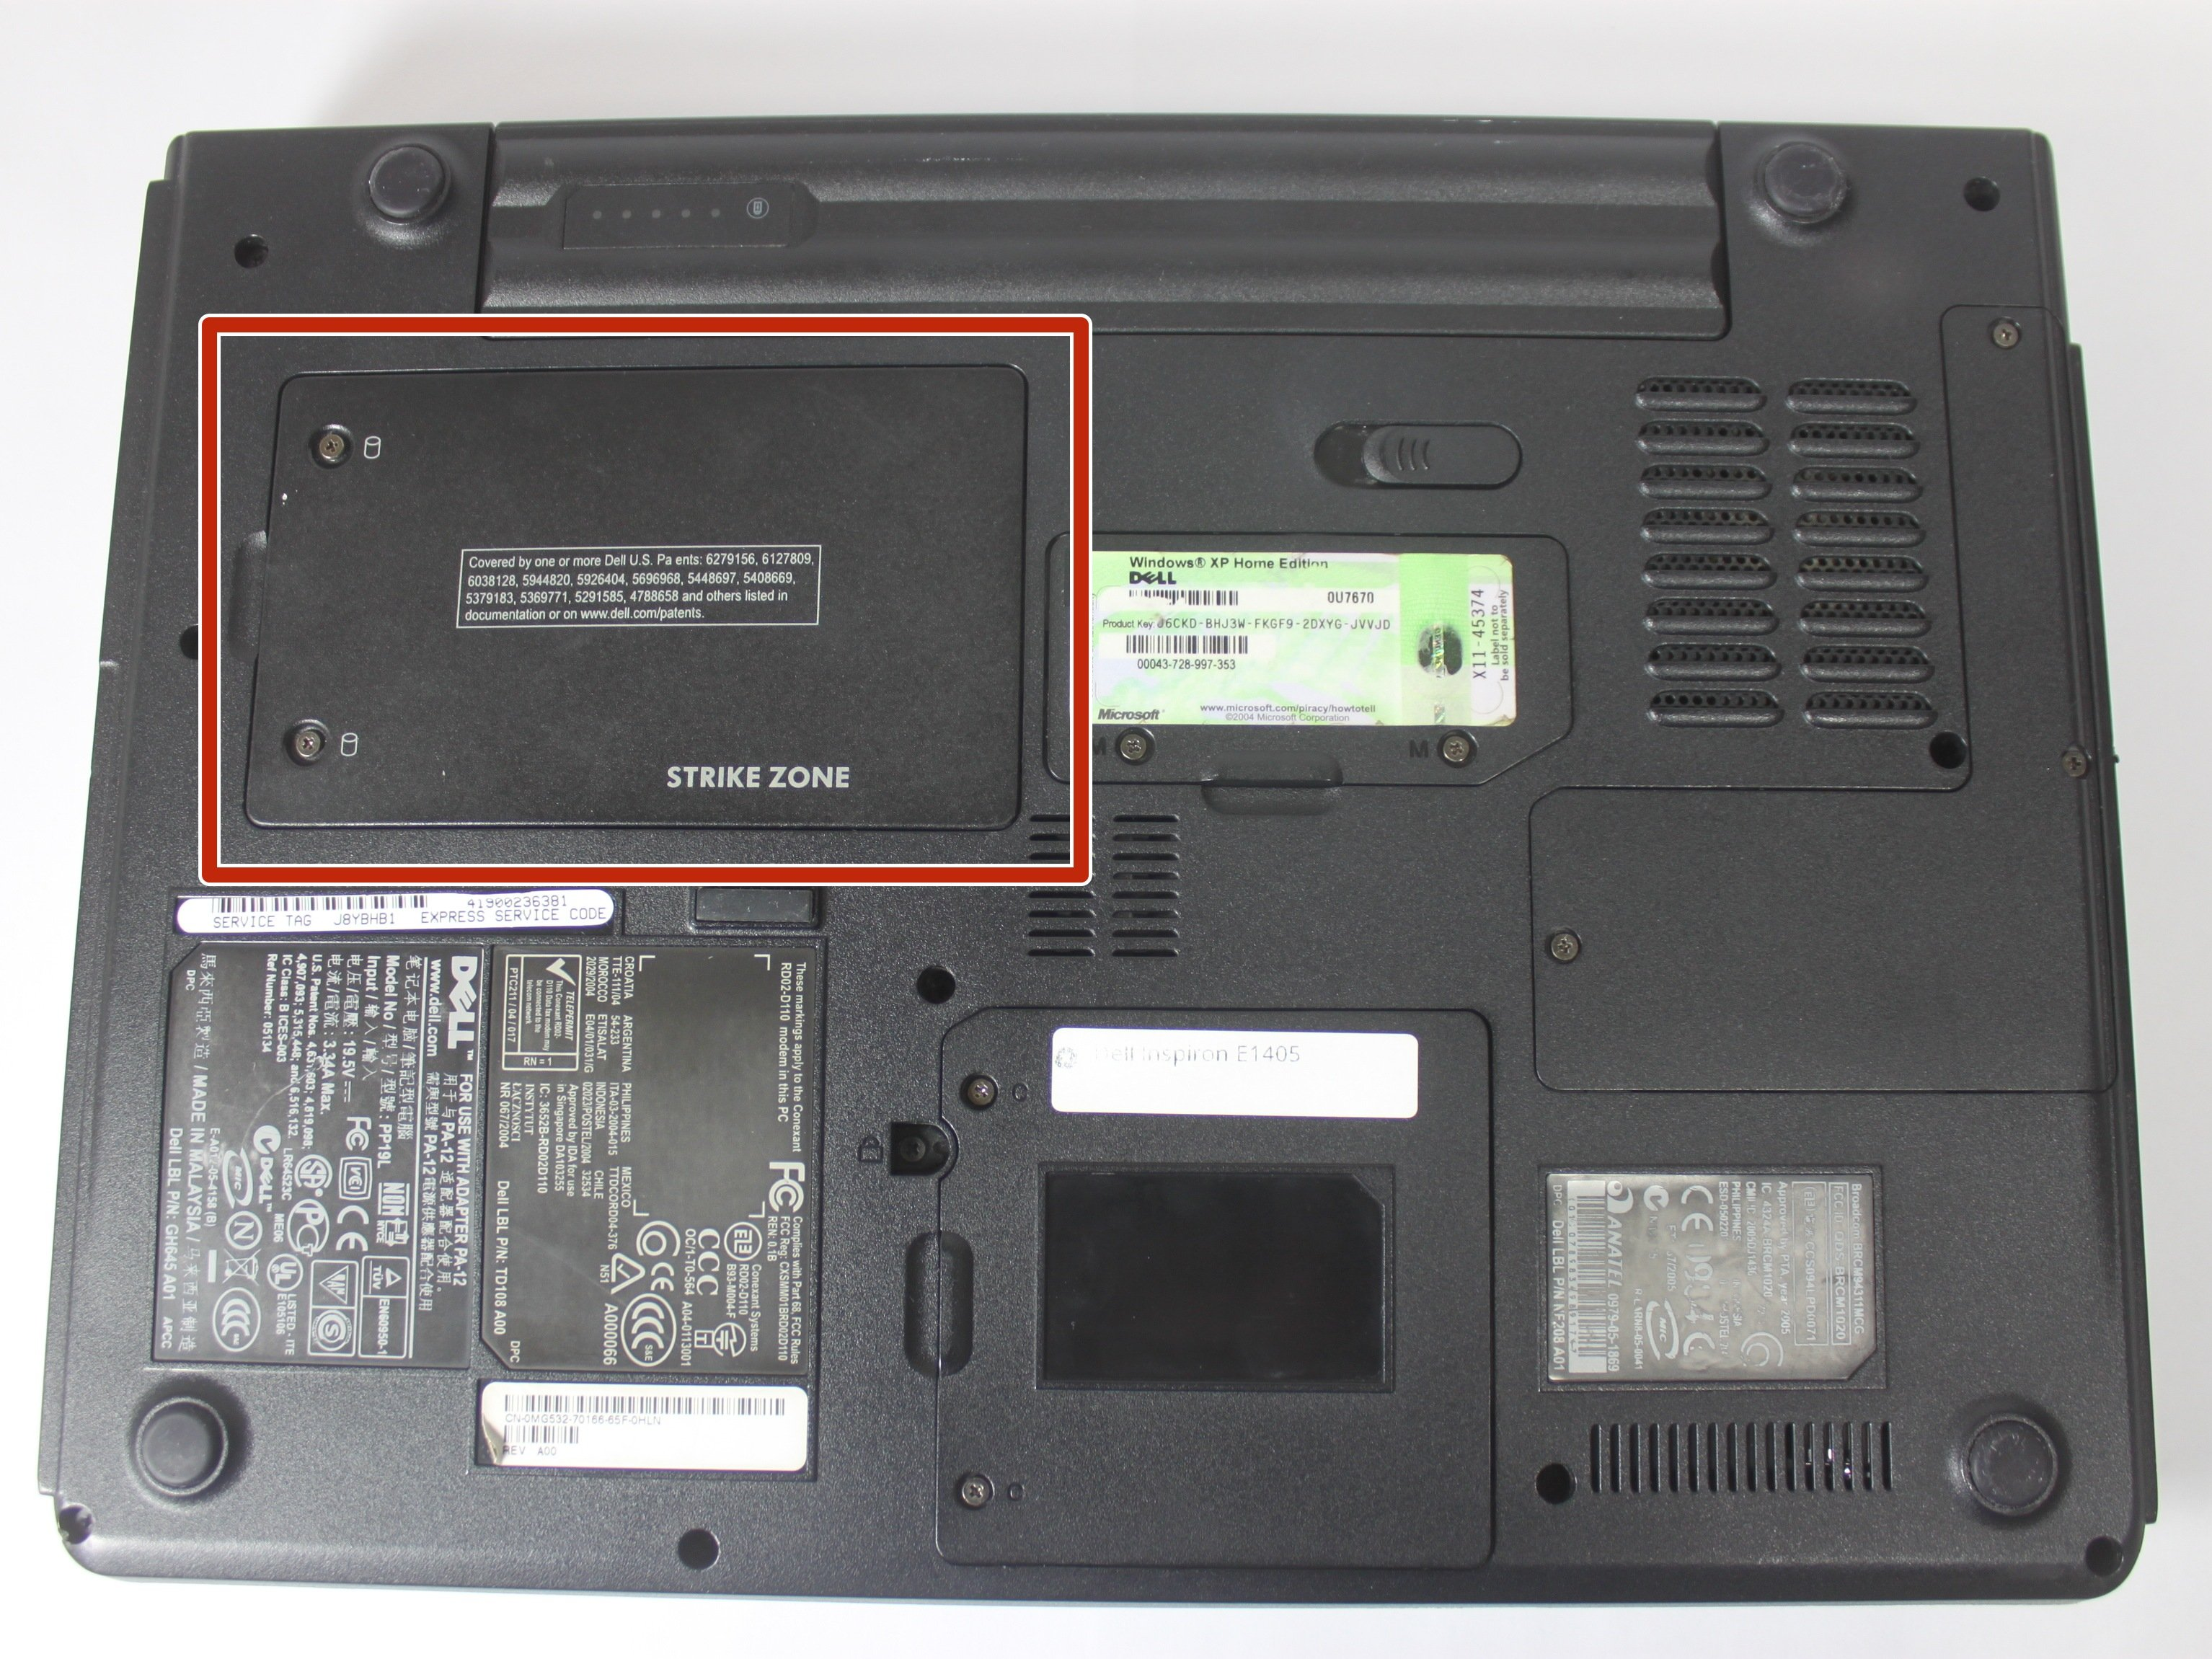 Dell Inspiron E1405 Hard Drive Replacement Ifixit Repair Guide